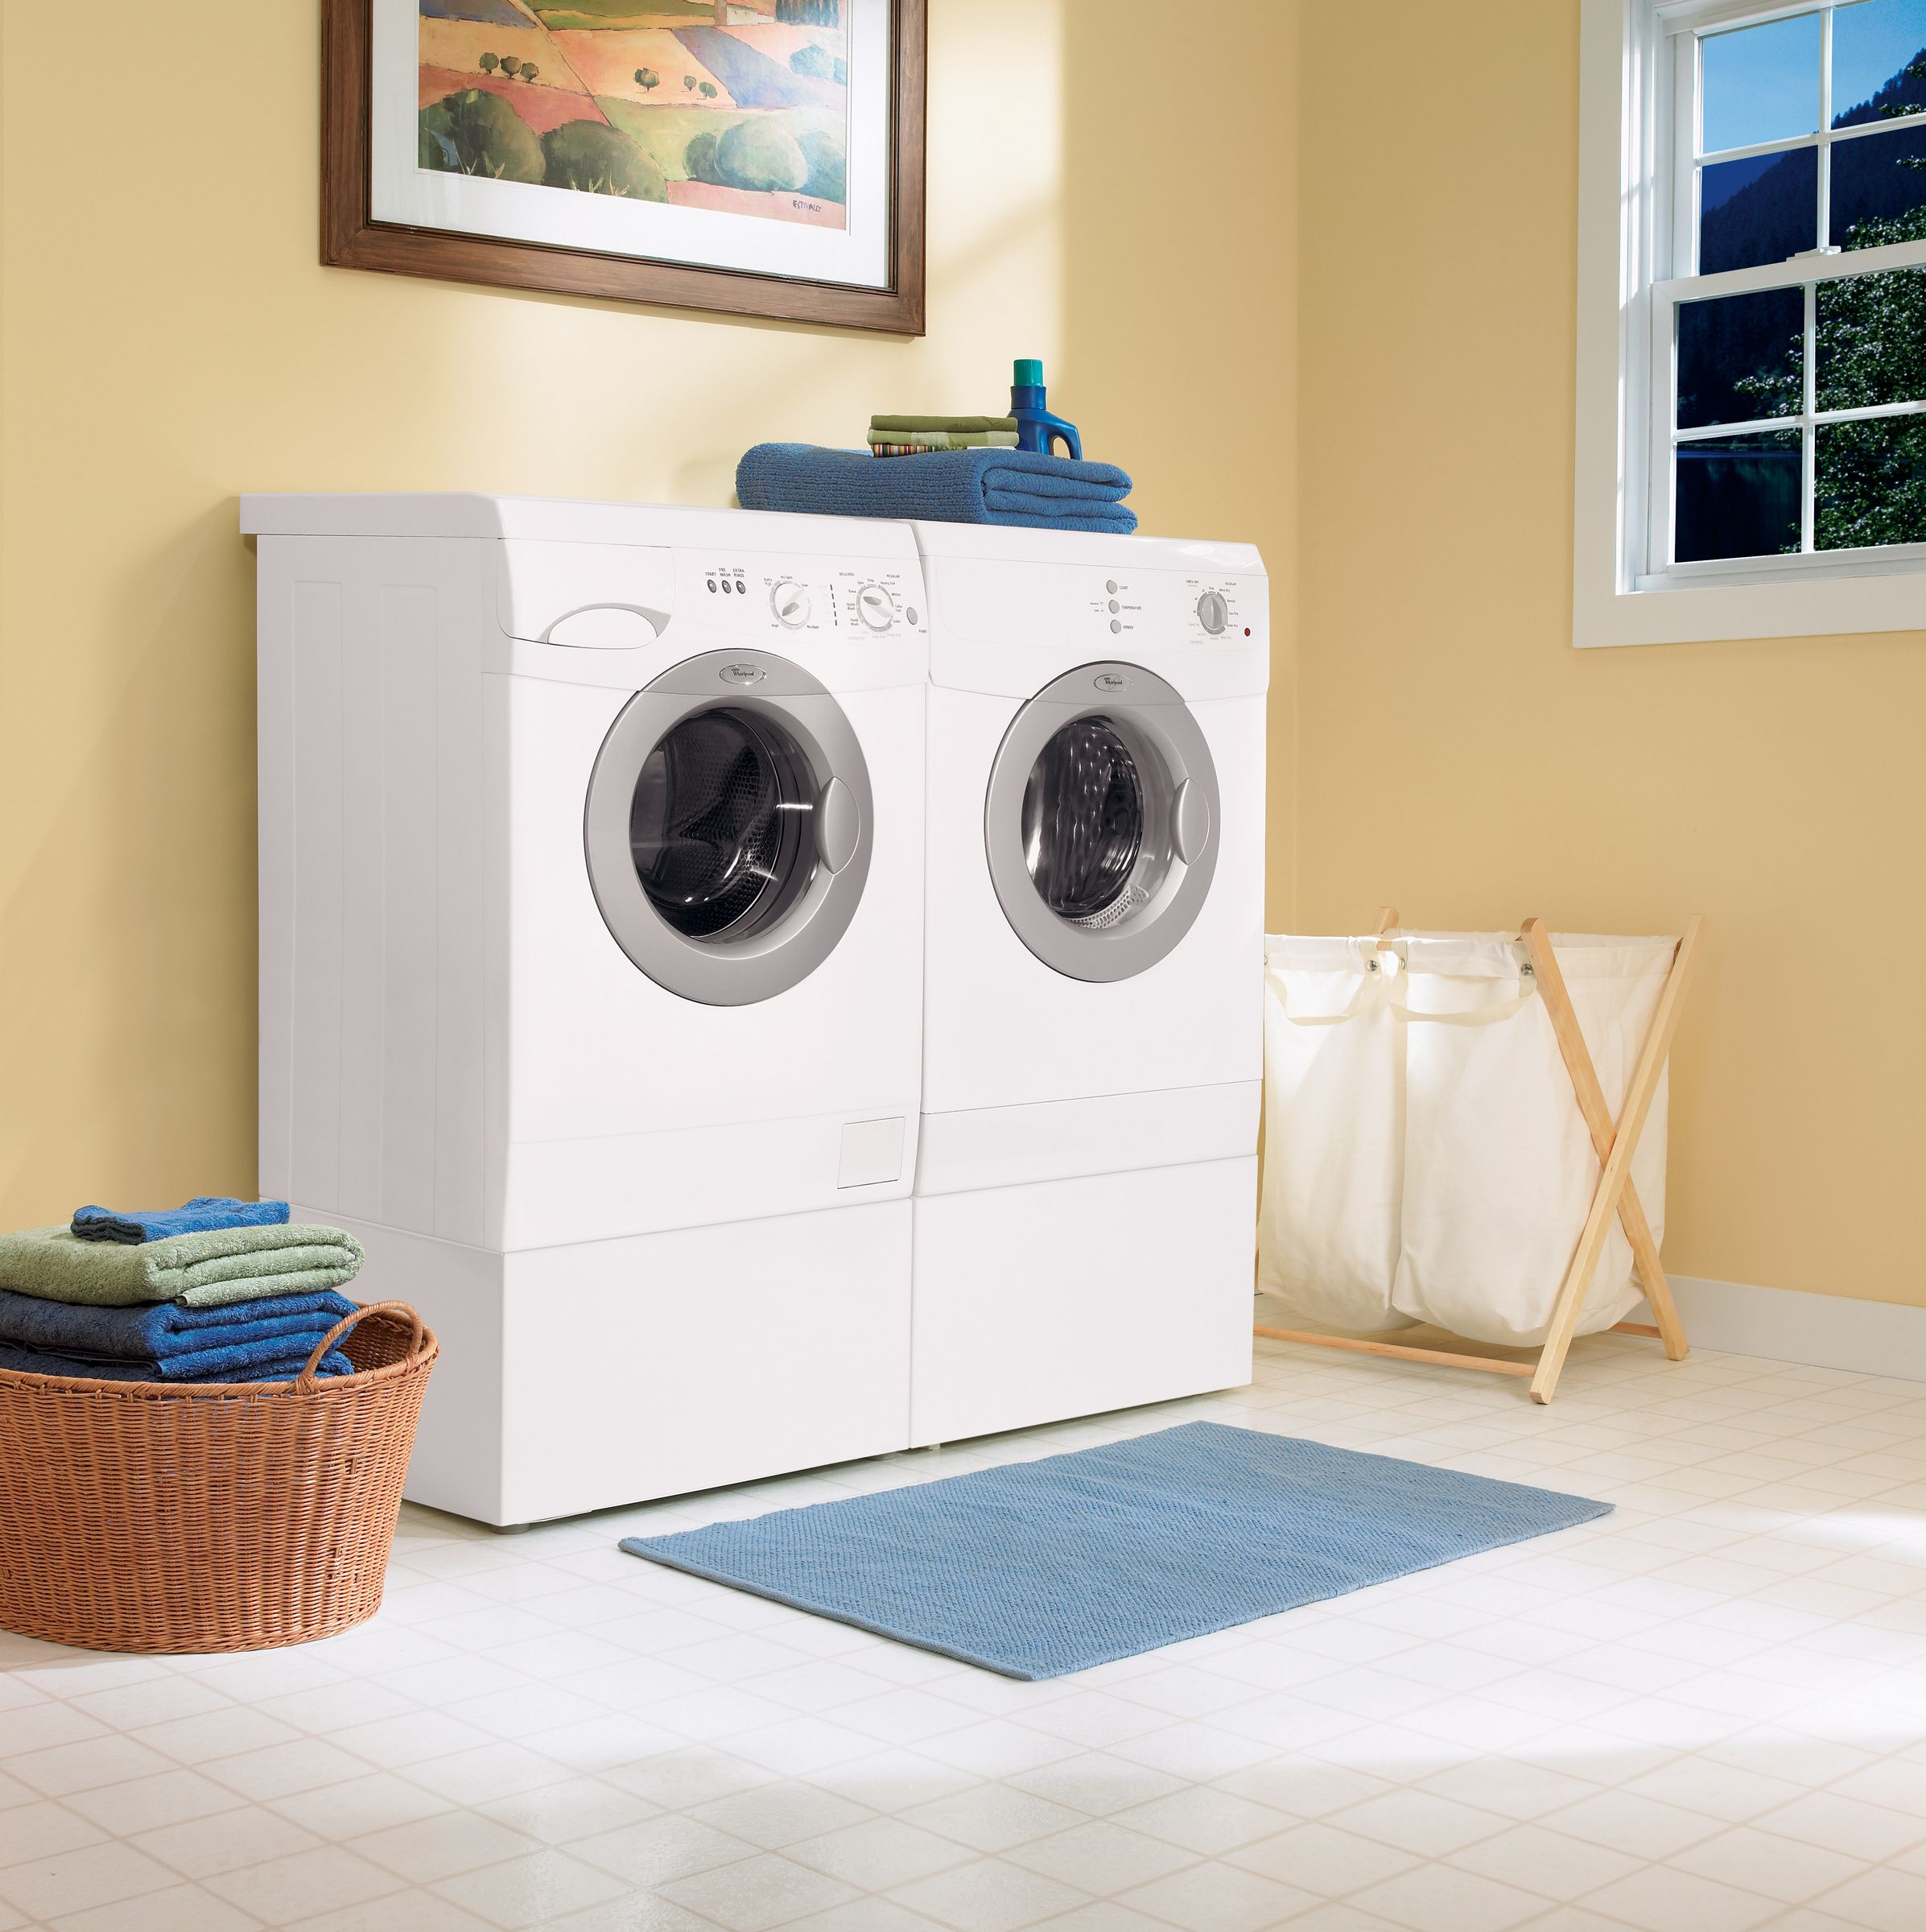 Whirlpool 3.8 cu. ft. Capacity Electric Dryer